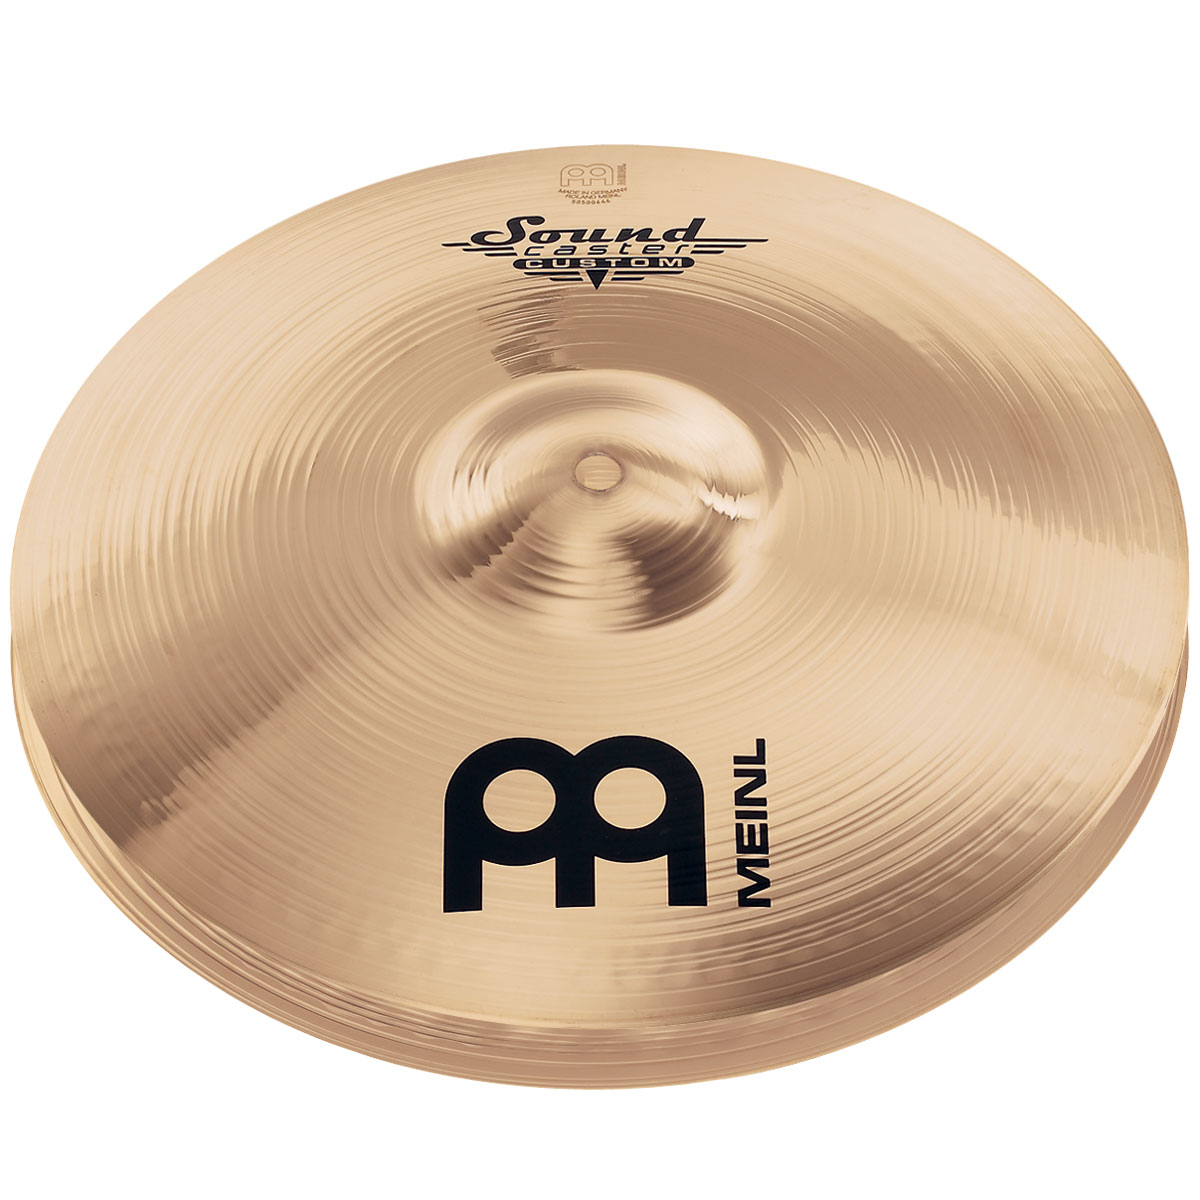 "Meinl 14"" Soundcaster Custom Powerful Hi Hat Cymbals"